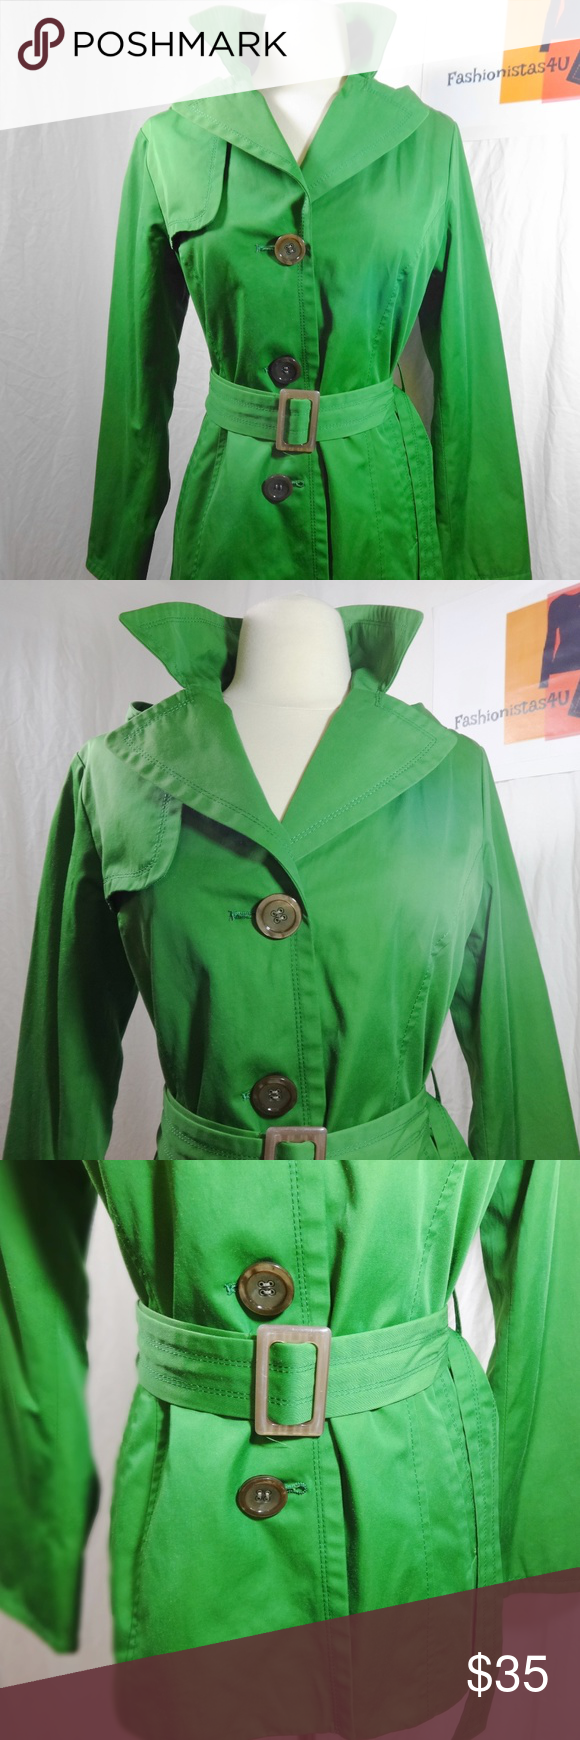 ELLEN TRACY Green Hooded Spring Coat Size XS Gently owned